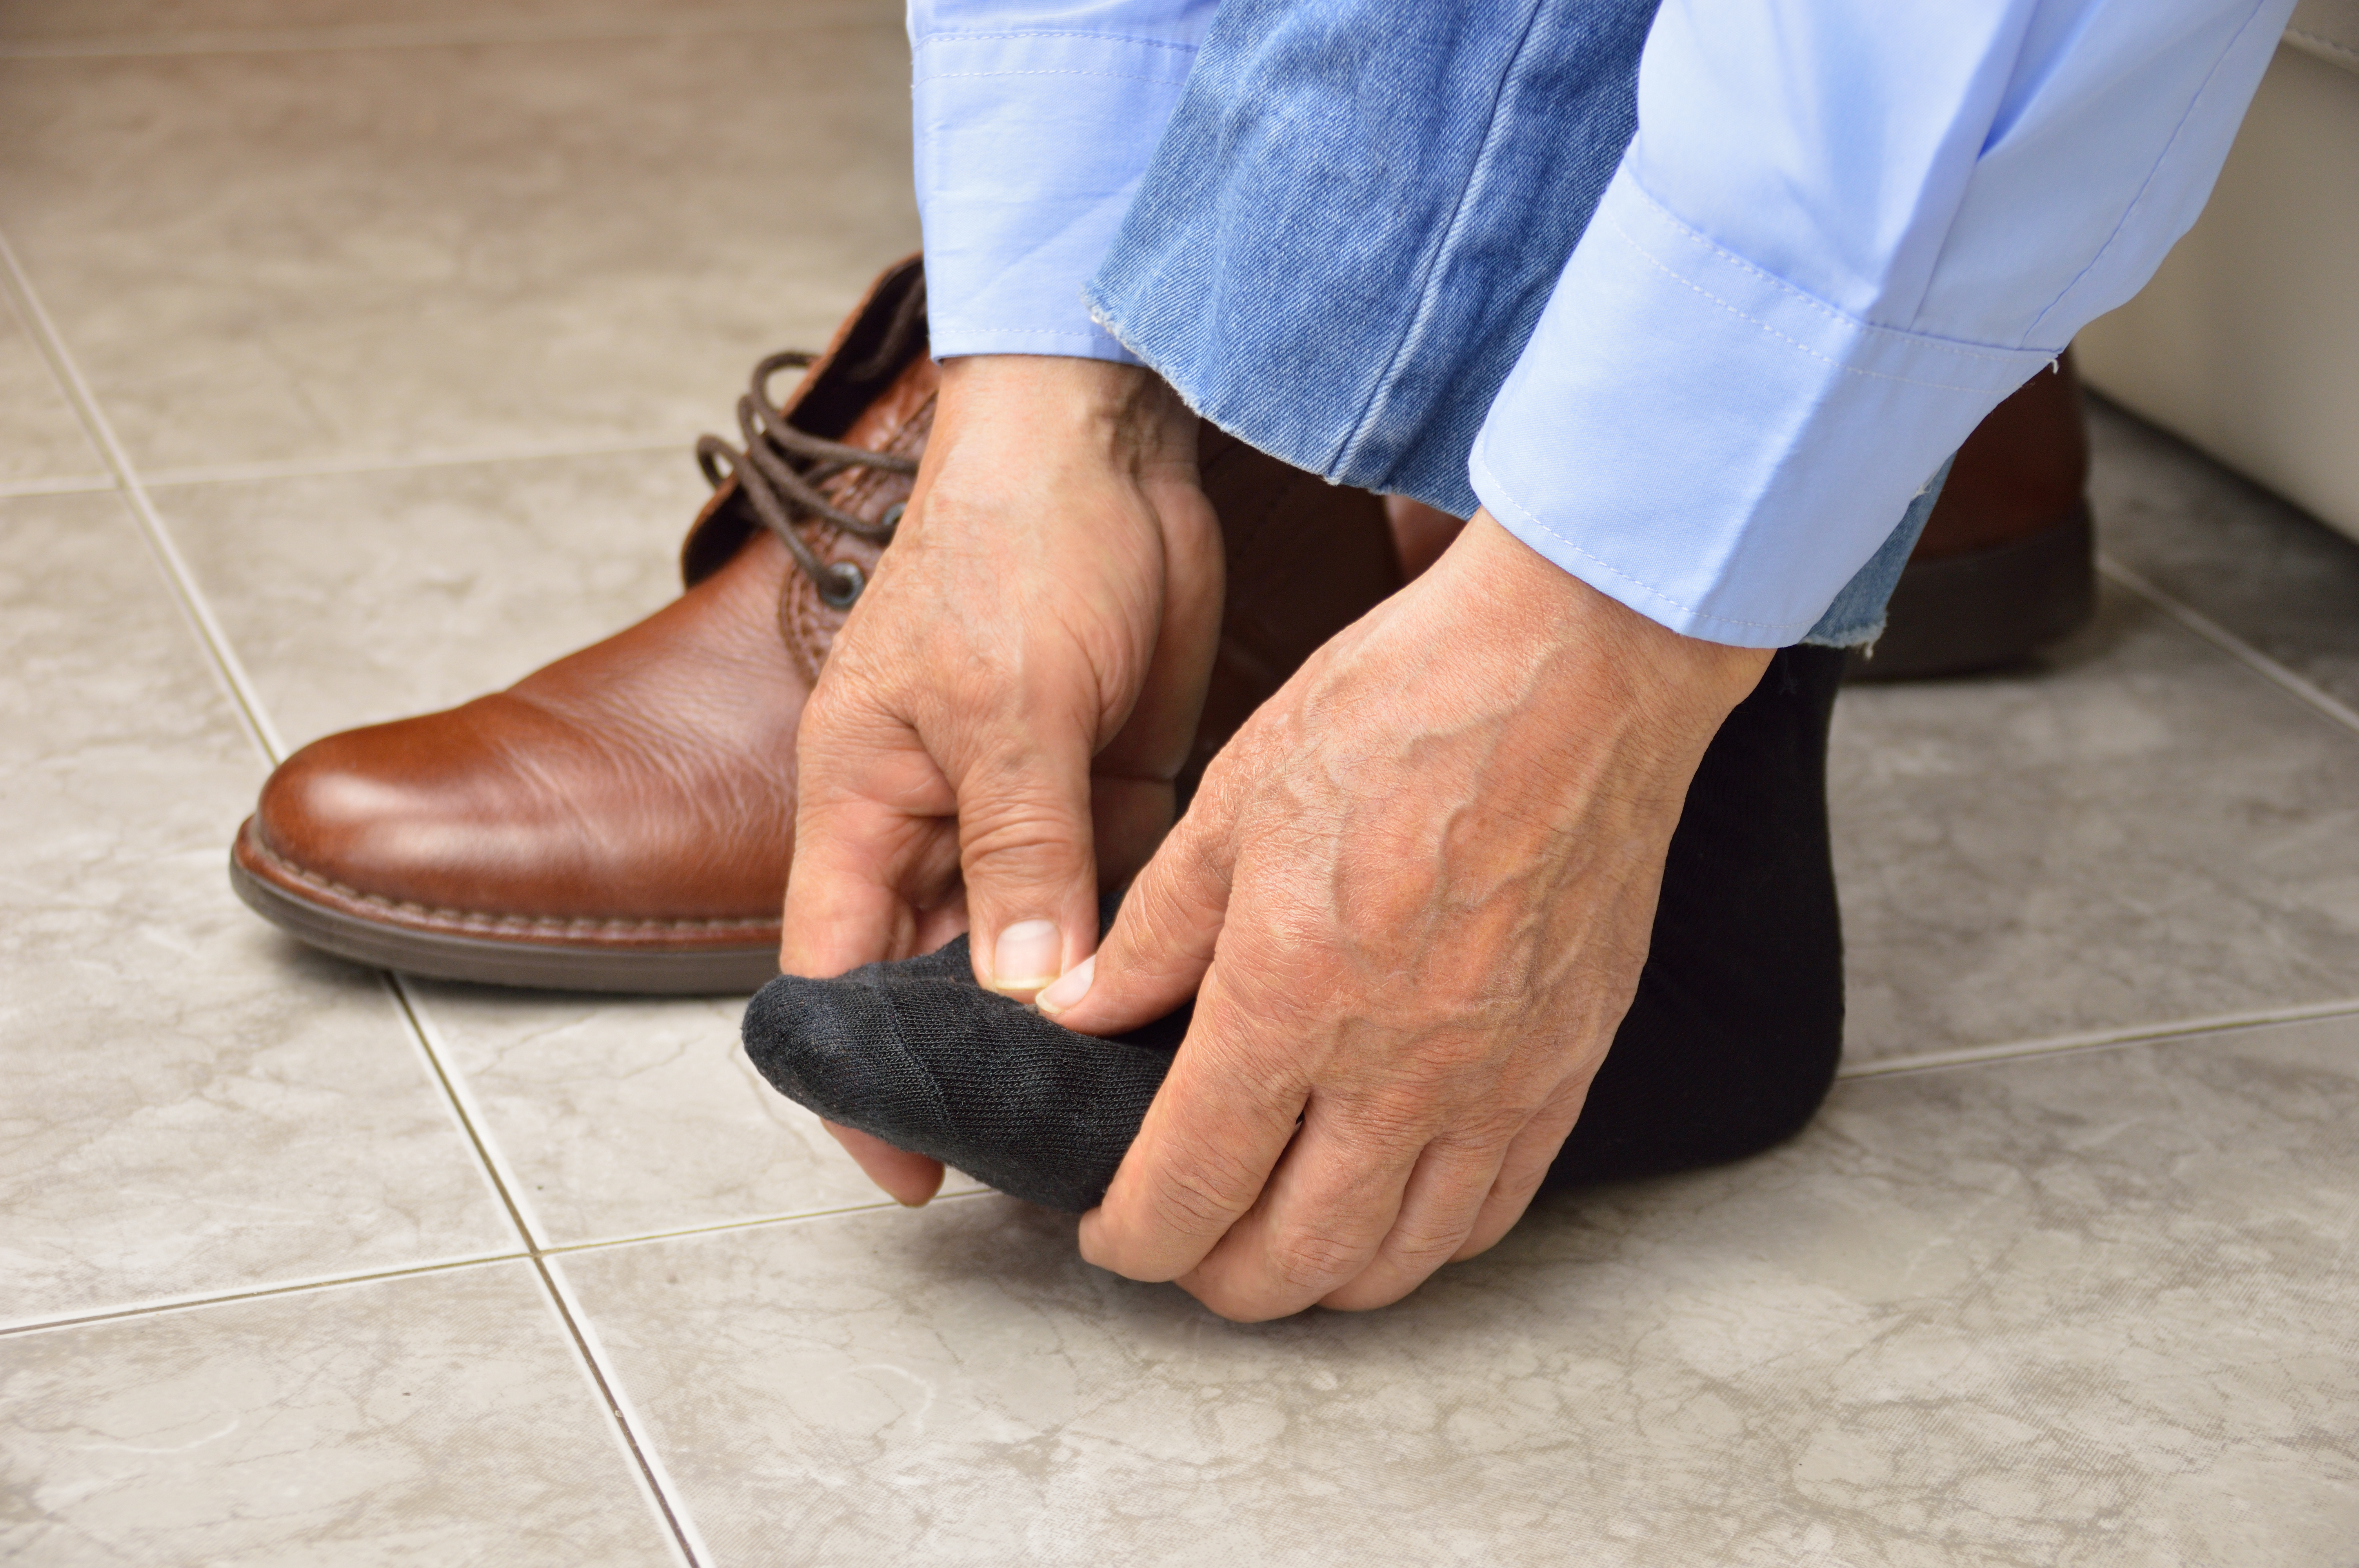 How Do Infected Foot Sores Creep Up on a Diabetic?